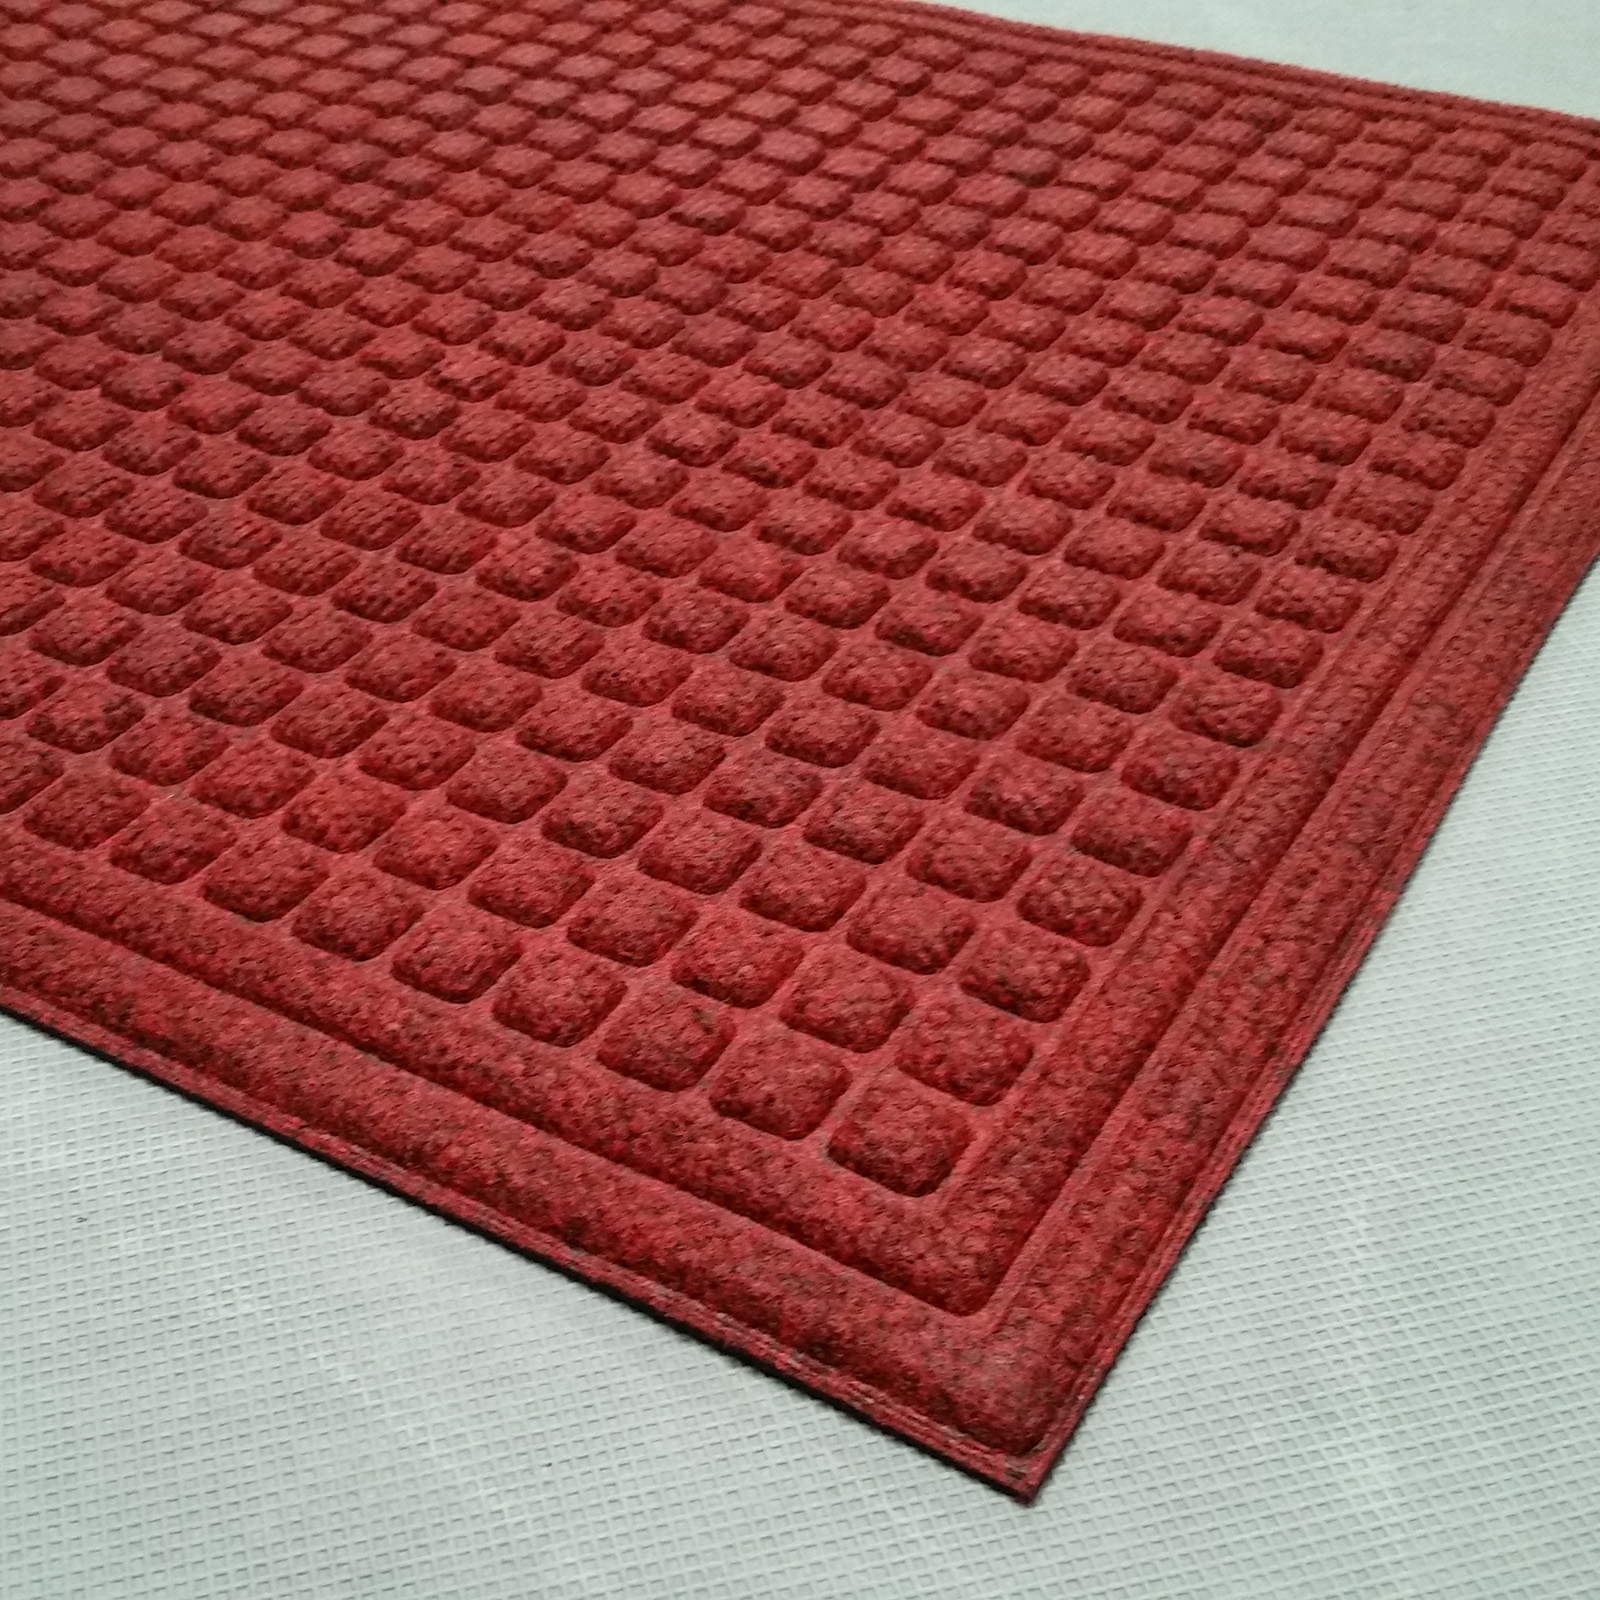 Cactus Mat 1508M-35 floor mat, carpet